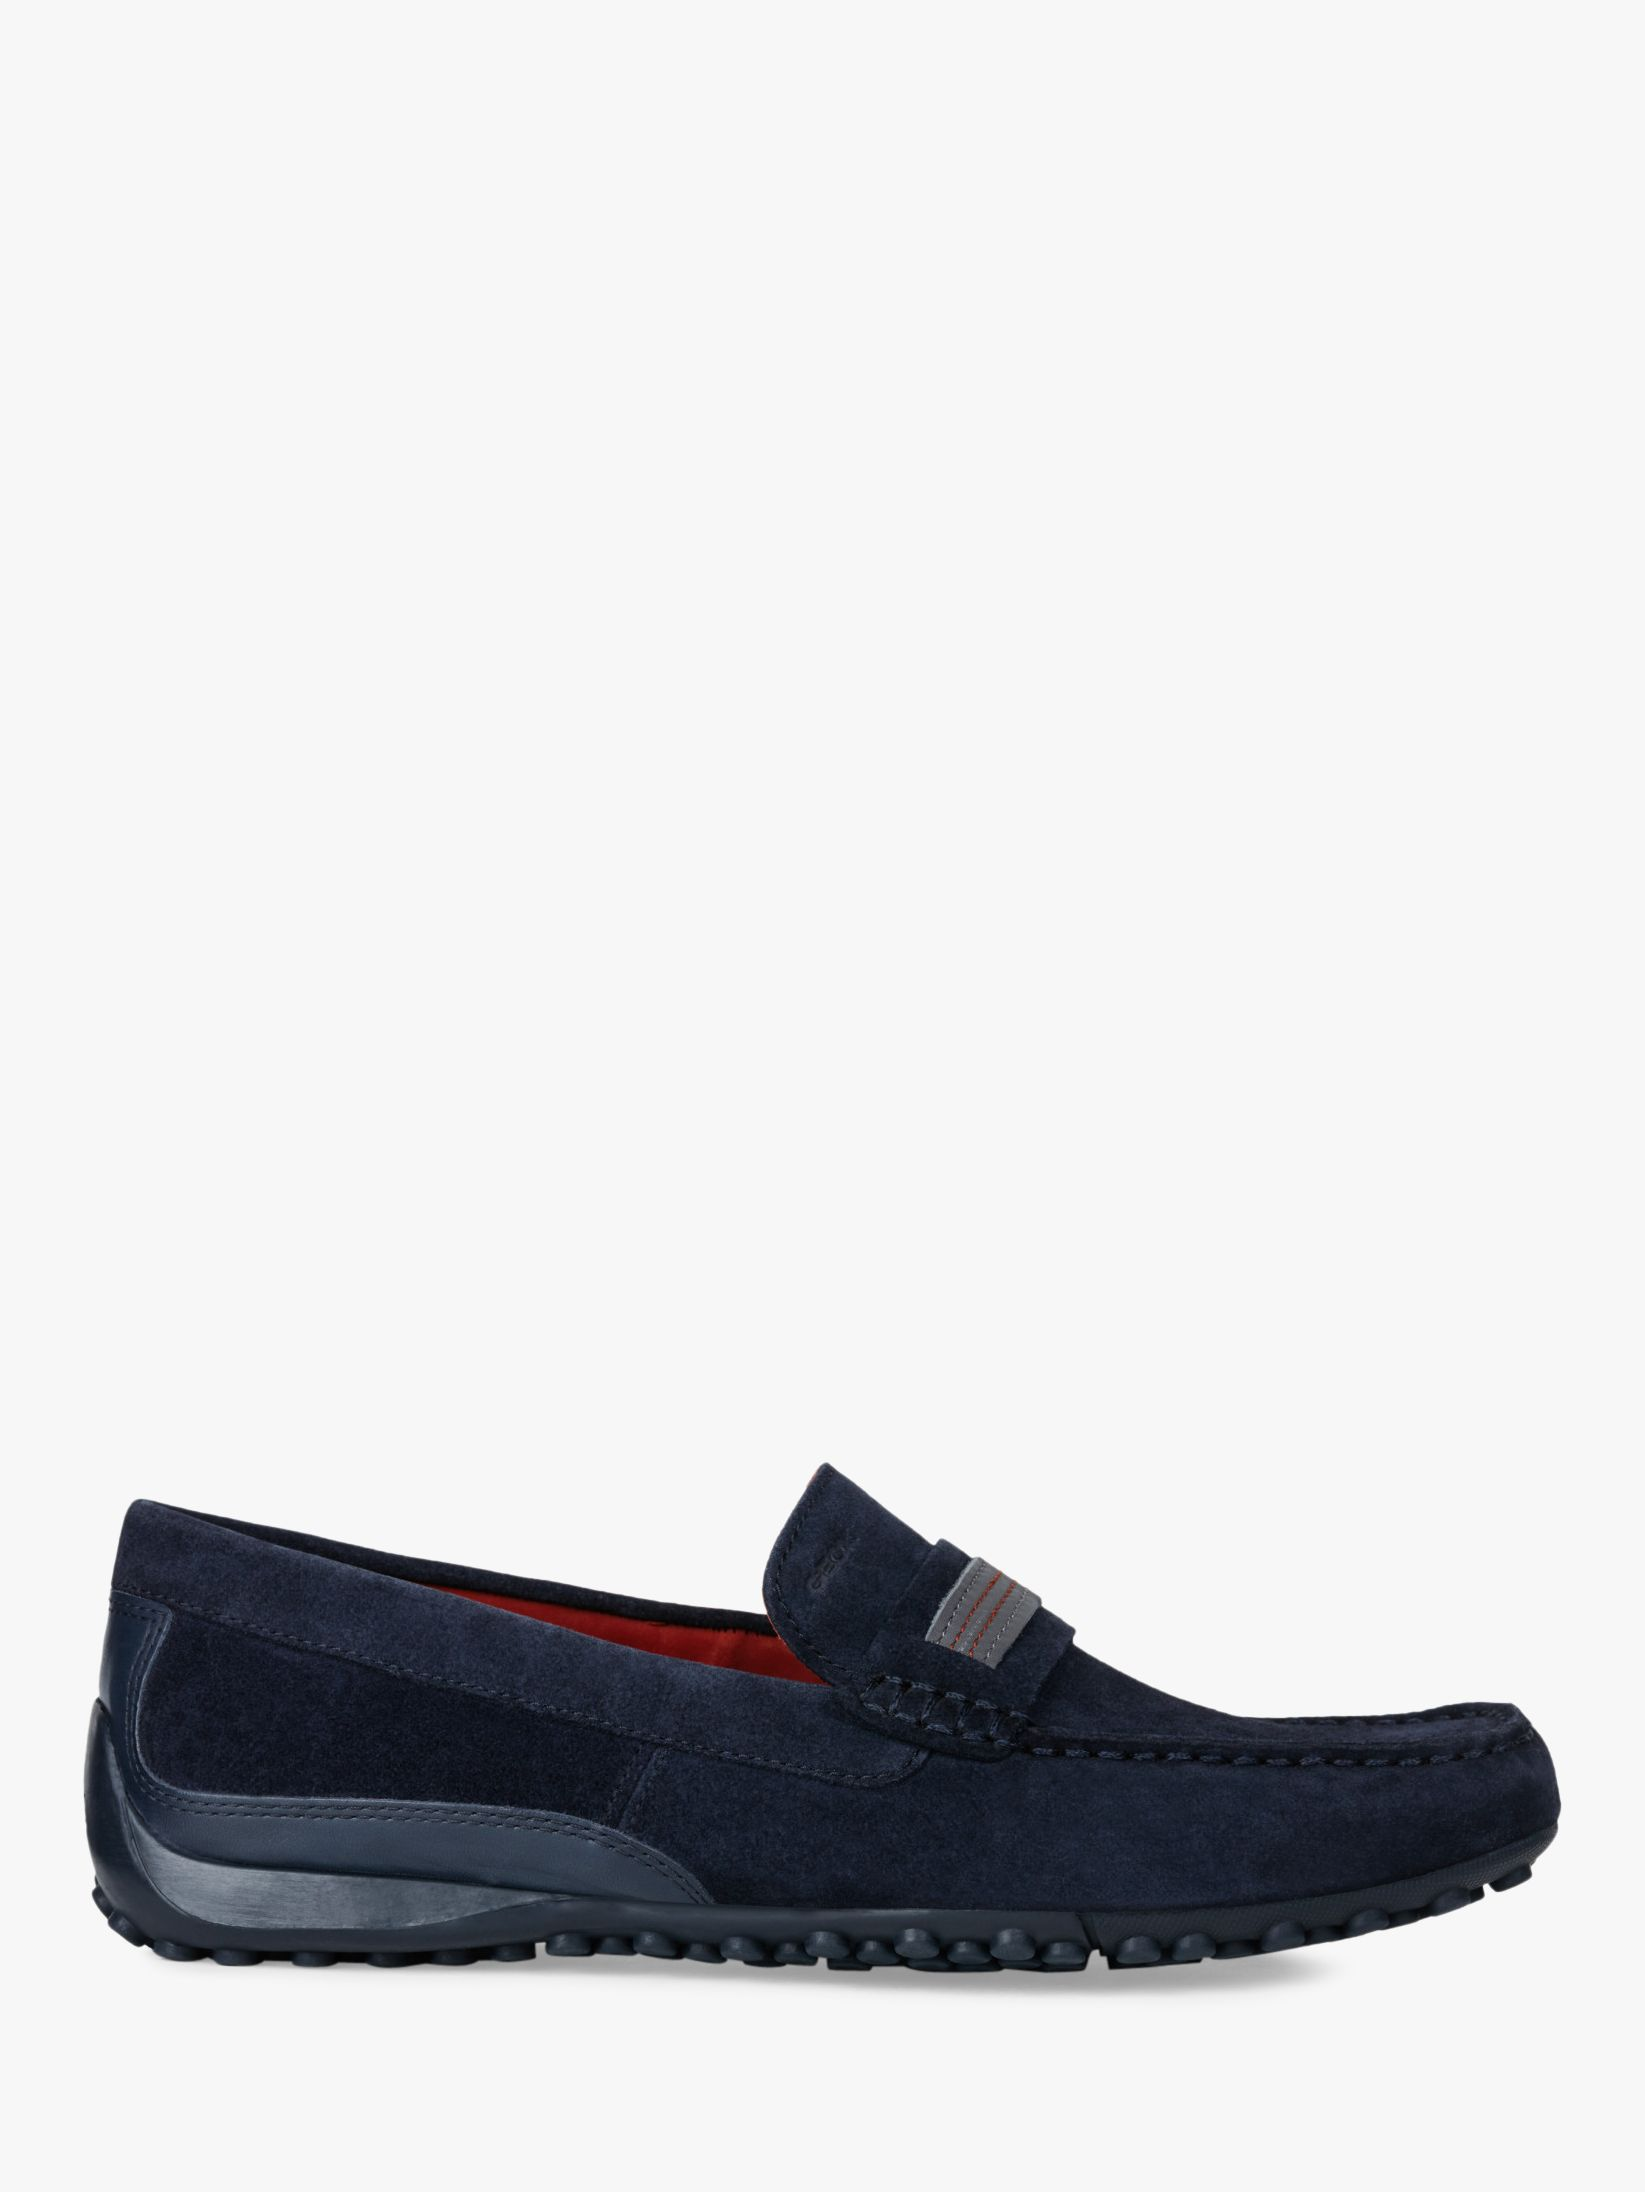 b2f9ab6bac7 Geox Snake Suede Moccasin Shoes at John Lewis & Partners